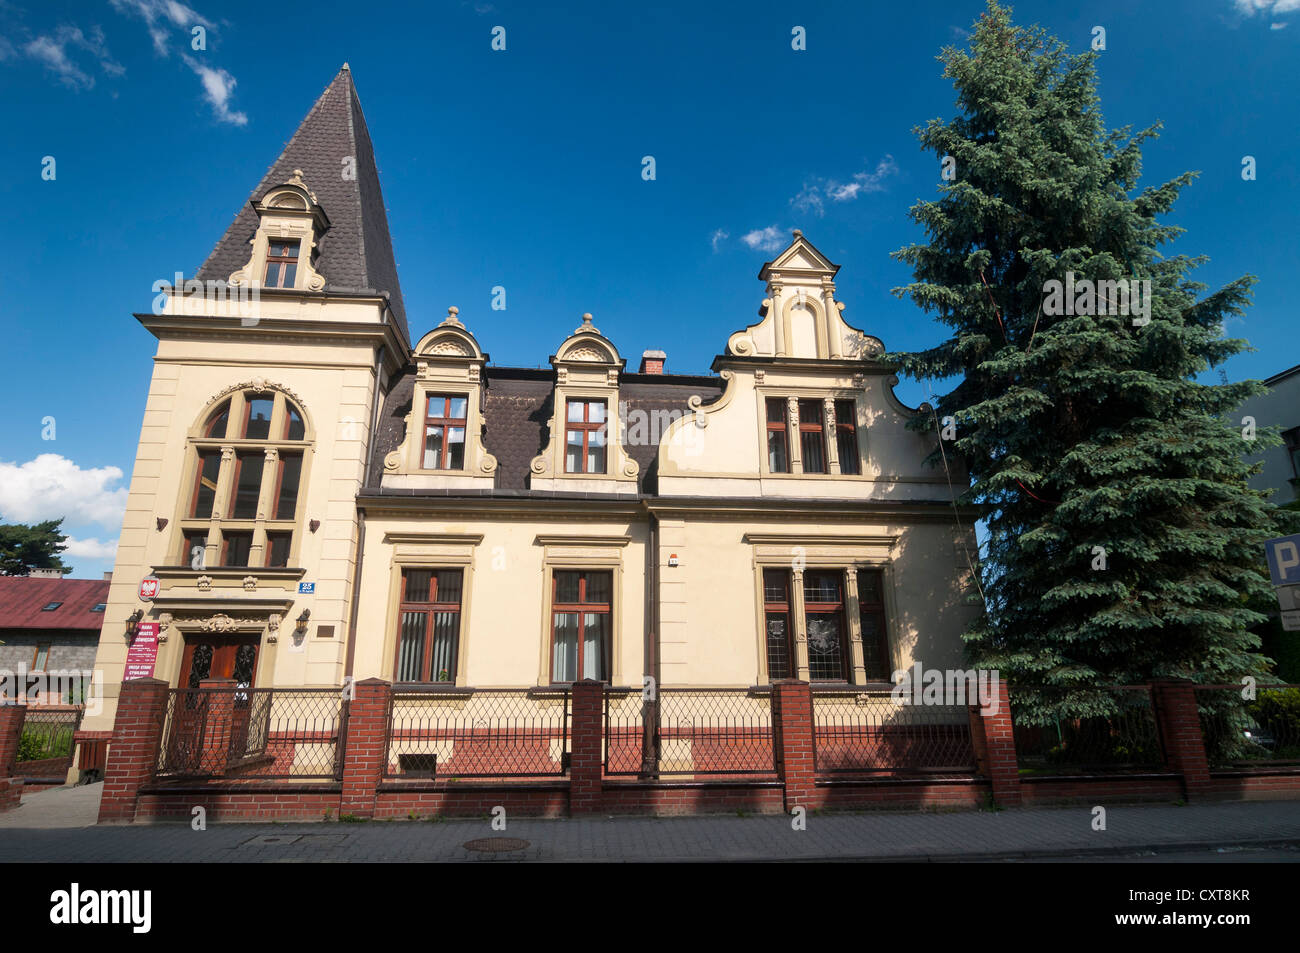 Building of the town council, Auschwitz, Oświęcim, Lesser Poland, Poland, Europe - Stock Image